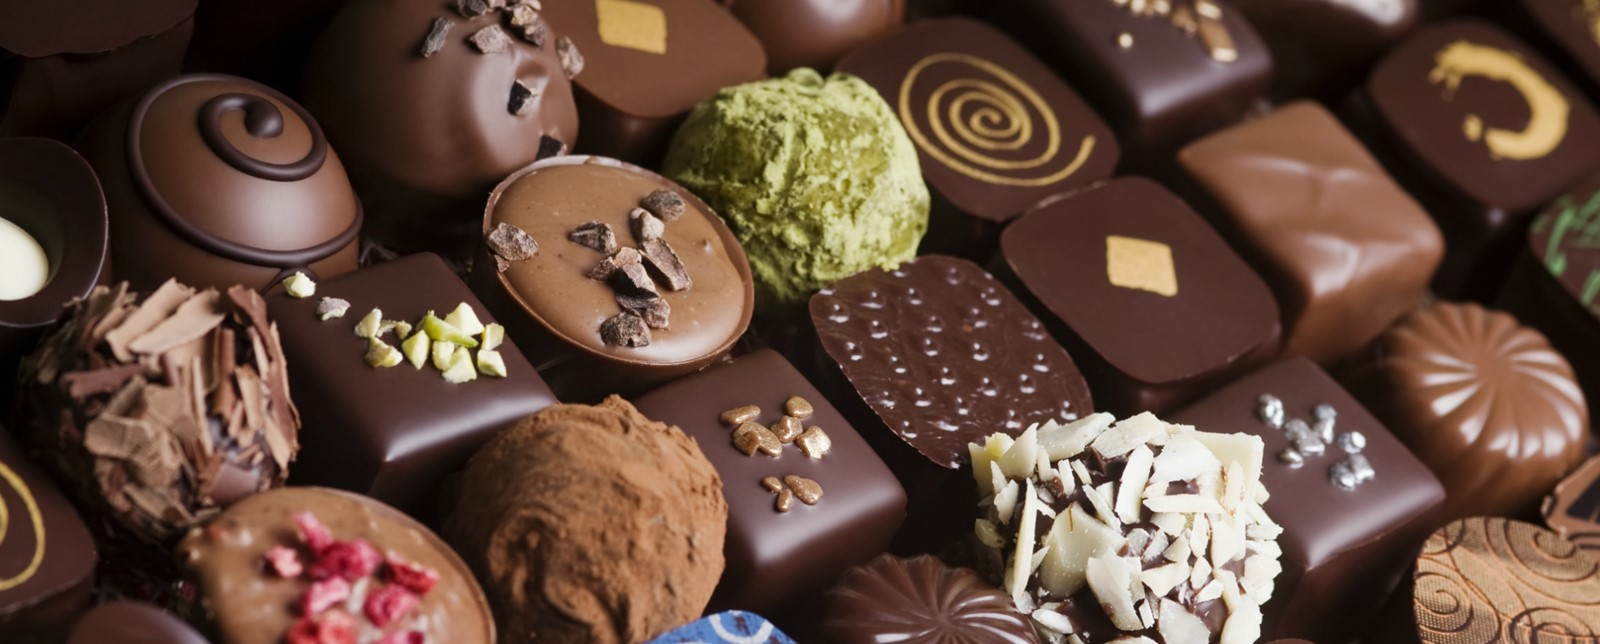 A variety of chocolates